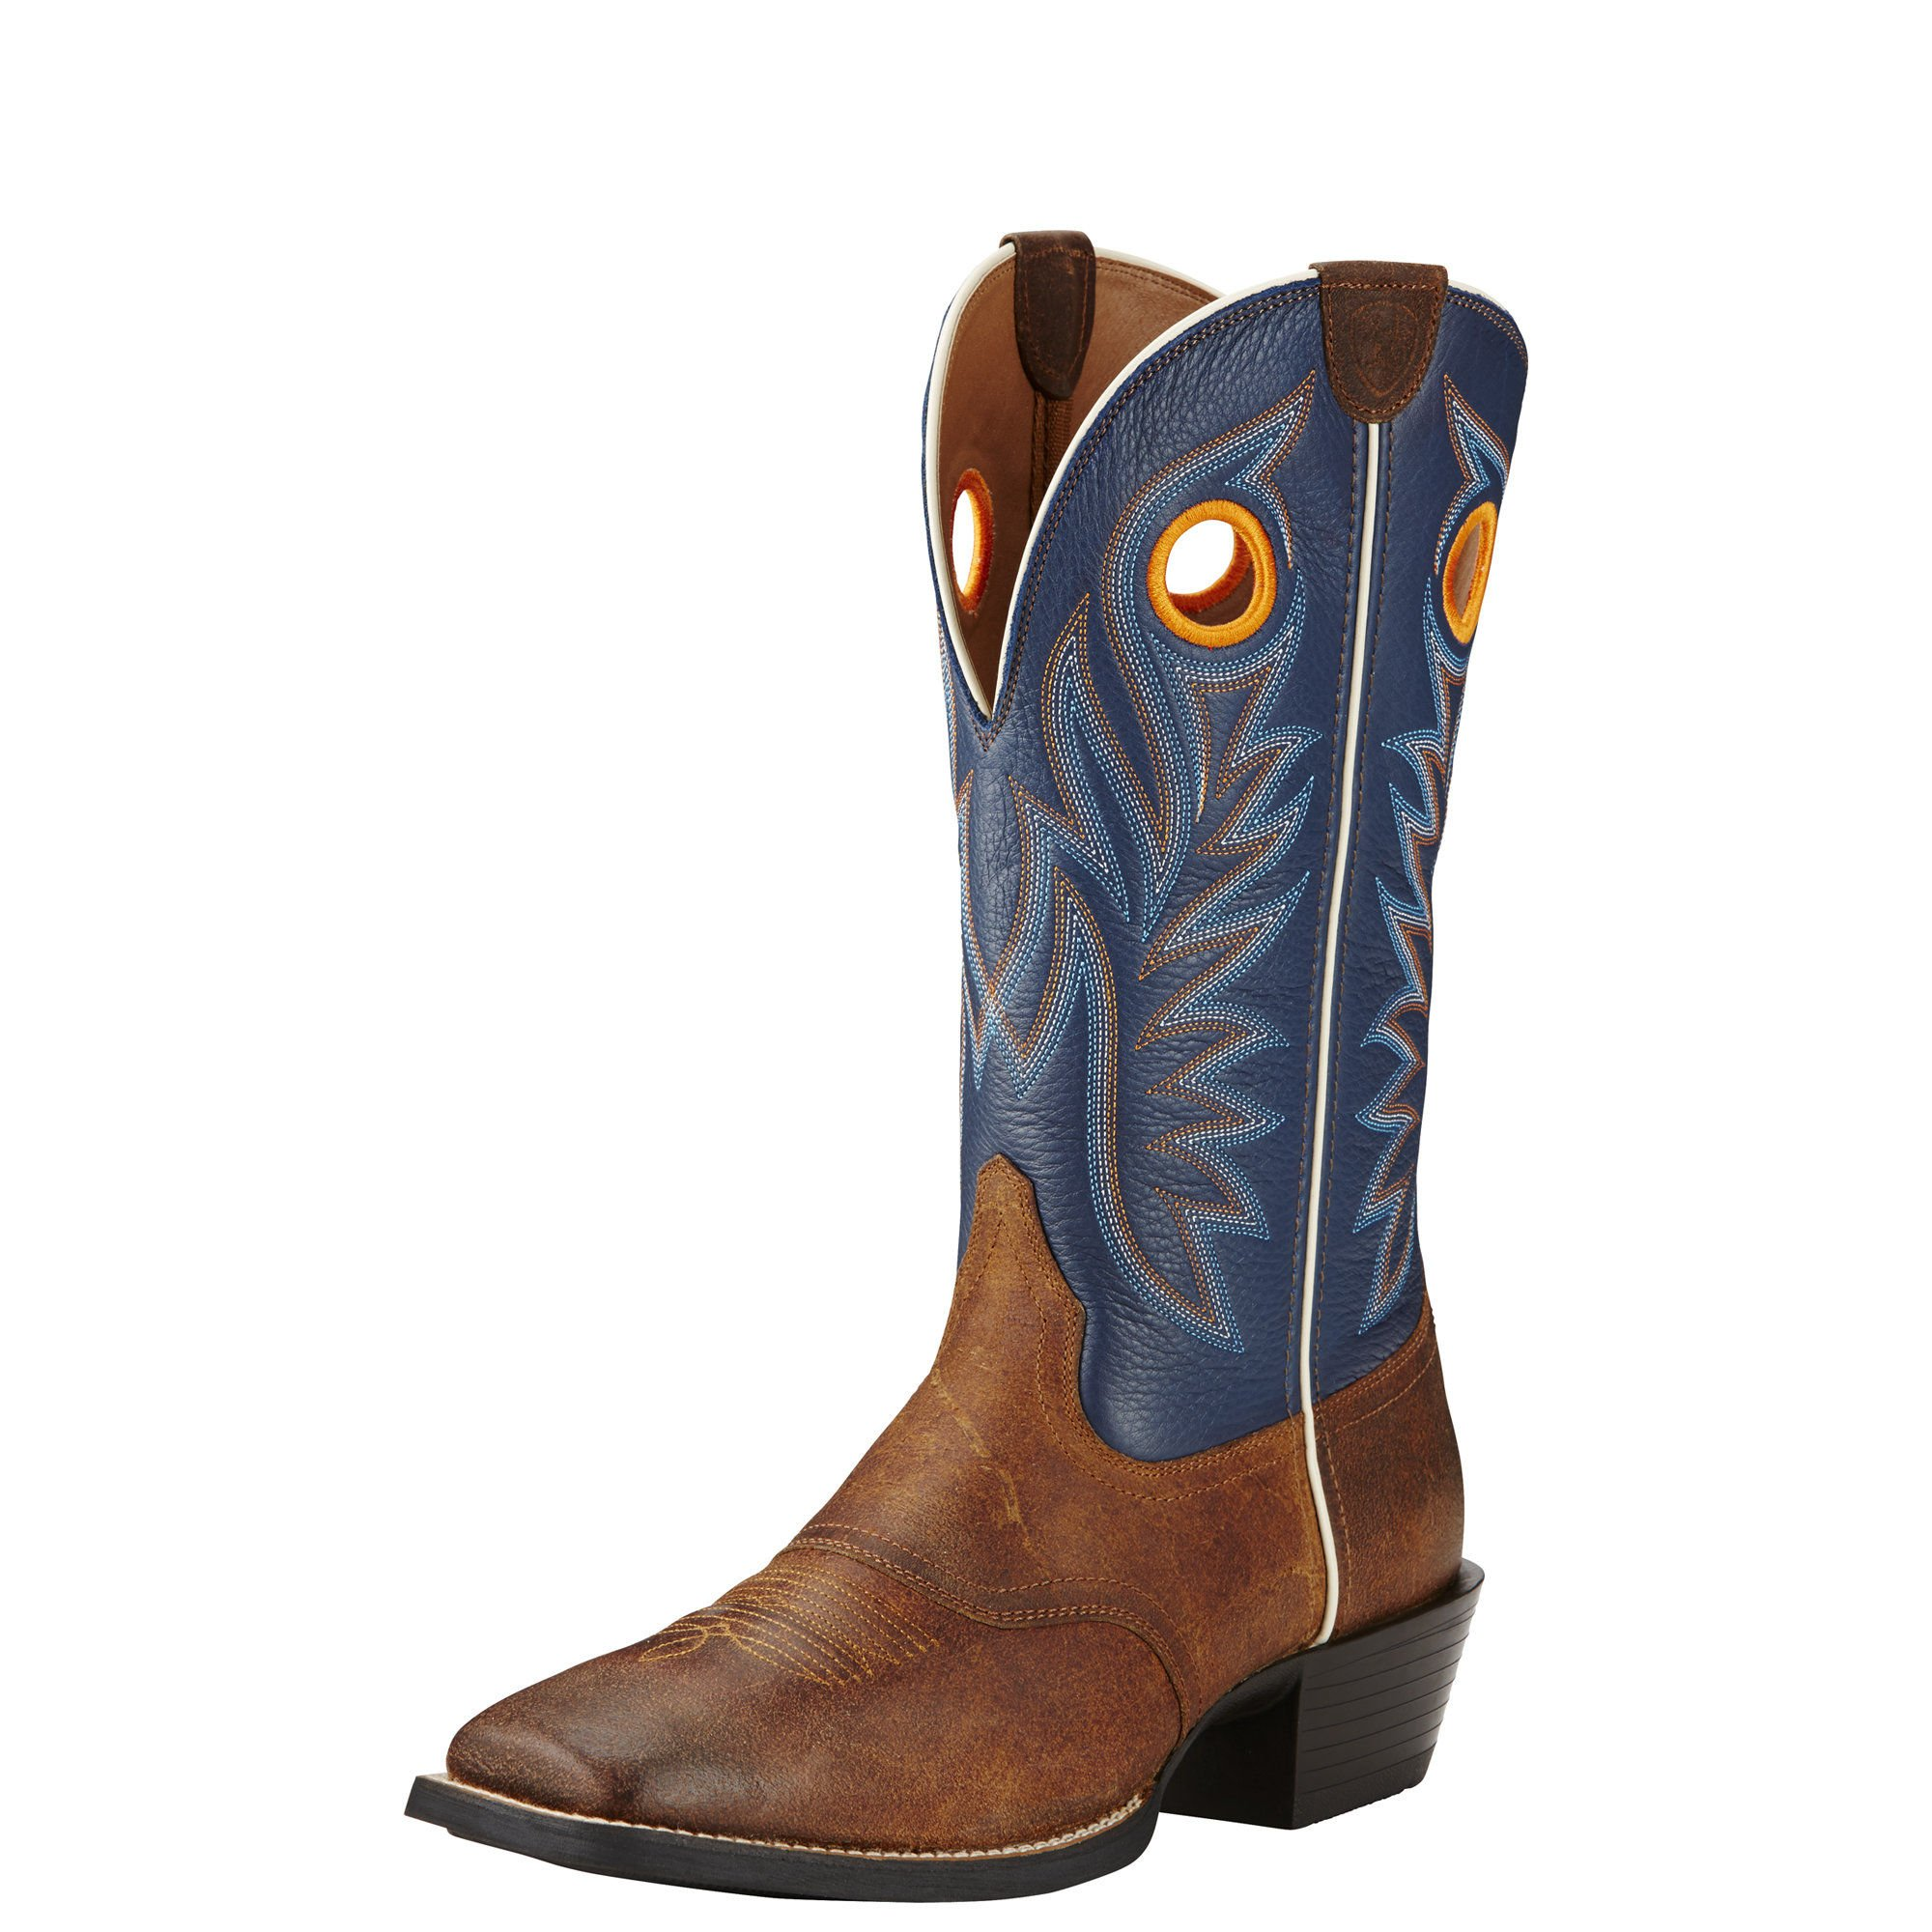 Ariat Men's Sport Outrider Western Cowboy Boot, Pinecone/Federal Blue, 10 D US